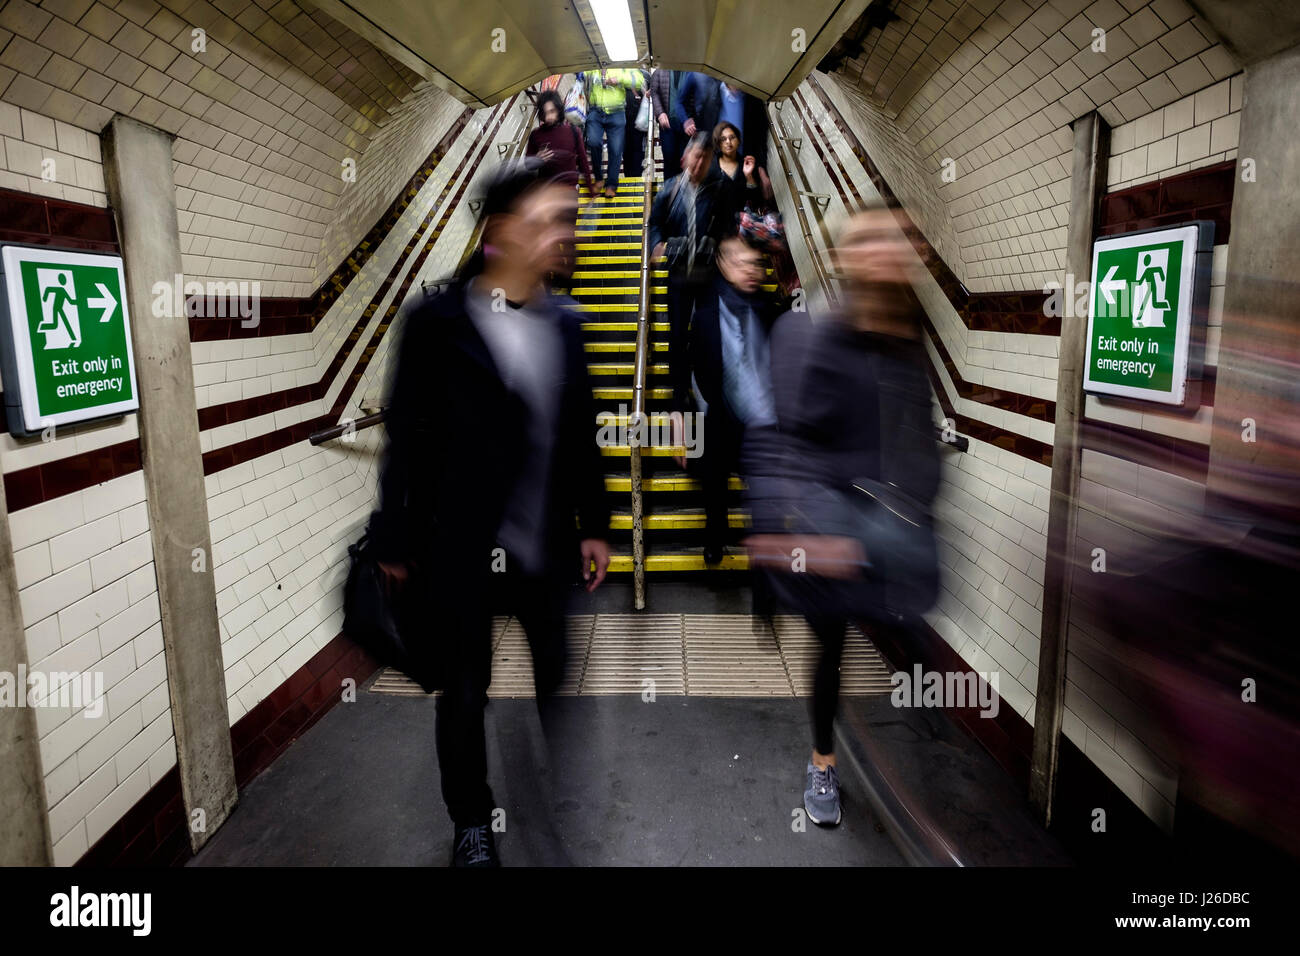 People walking fast during rush hour at an underground metro station in London, England, UK, Europe - Stock Image